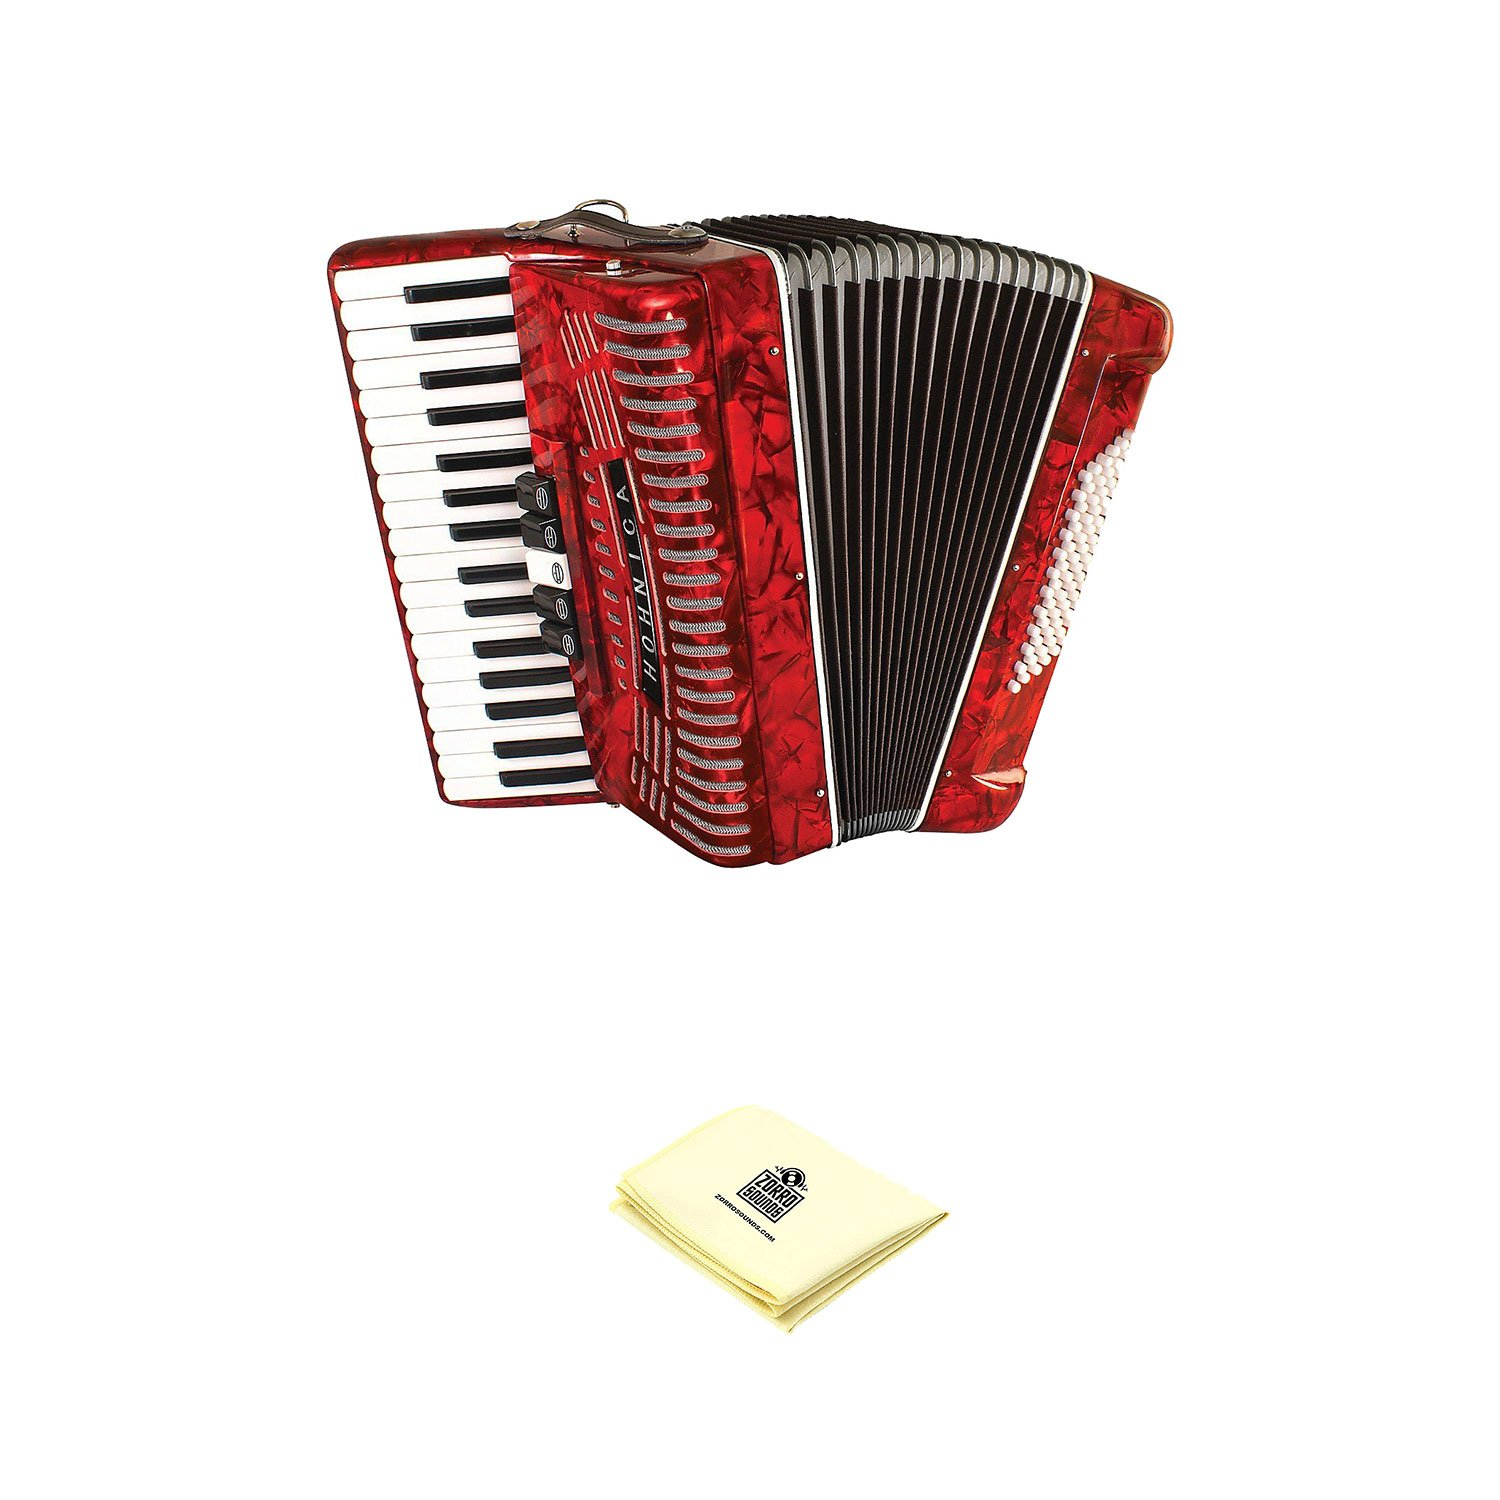 Hohner Accordion 1305-RED 97 Key 72 Bass Style Keyboard Piano Accordion in Red Bundle with Zorro Sounds Piano Accordion Cloth by Hohner Accordions